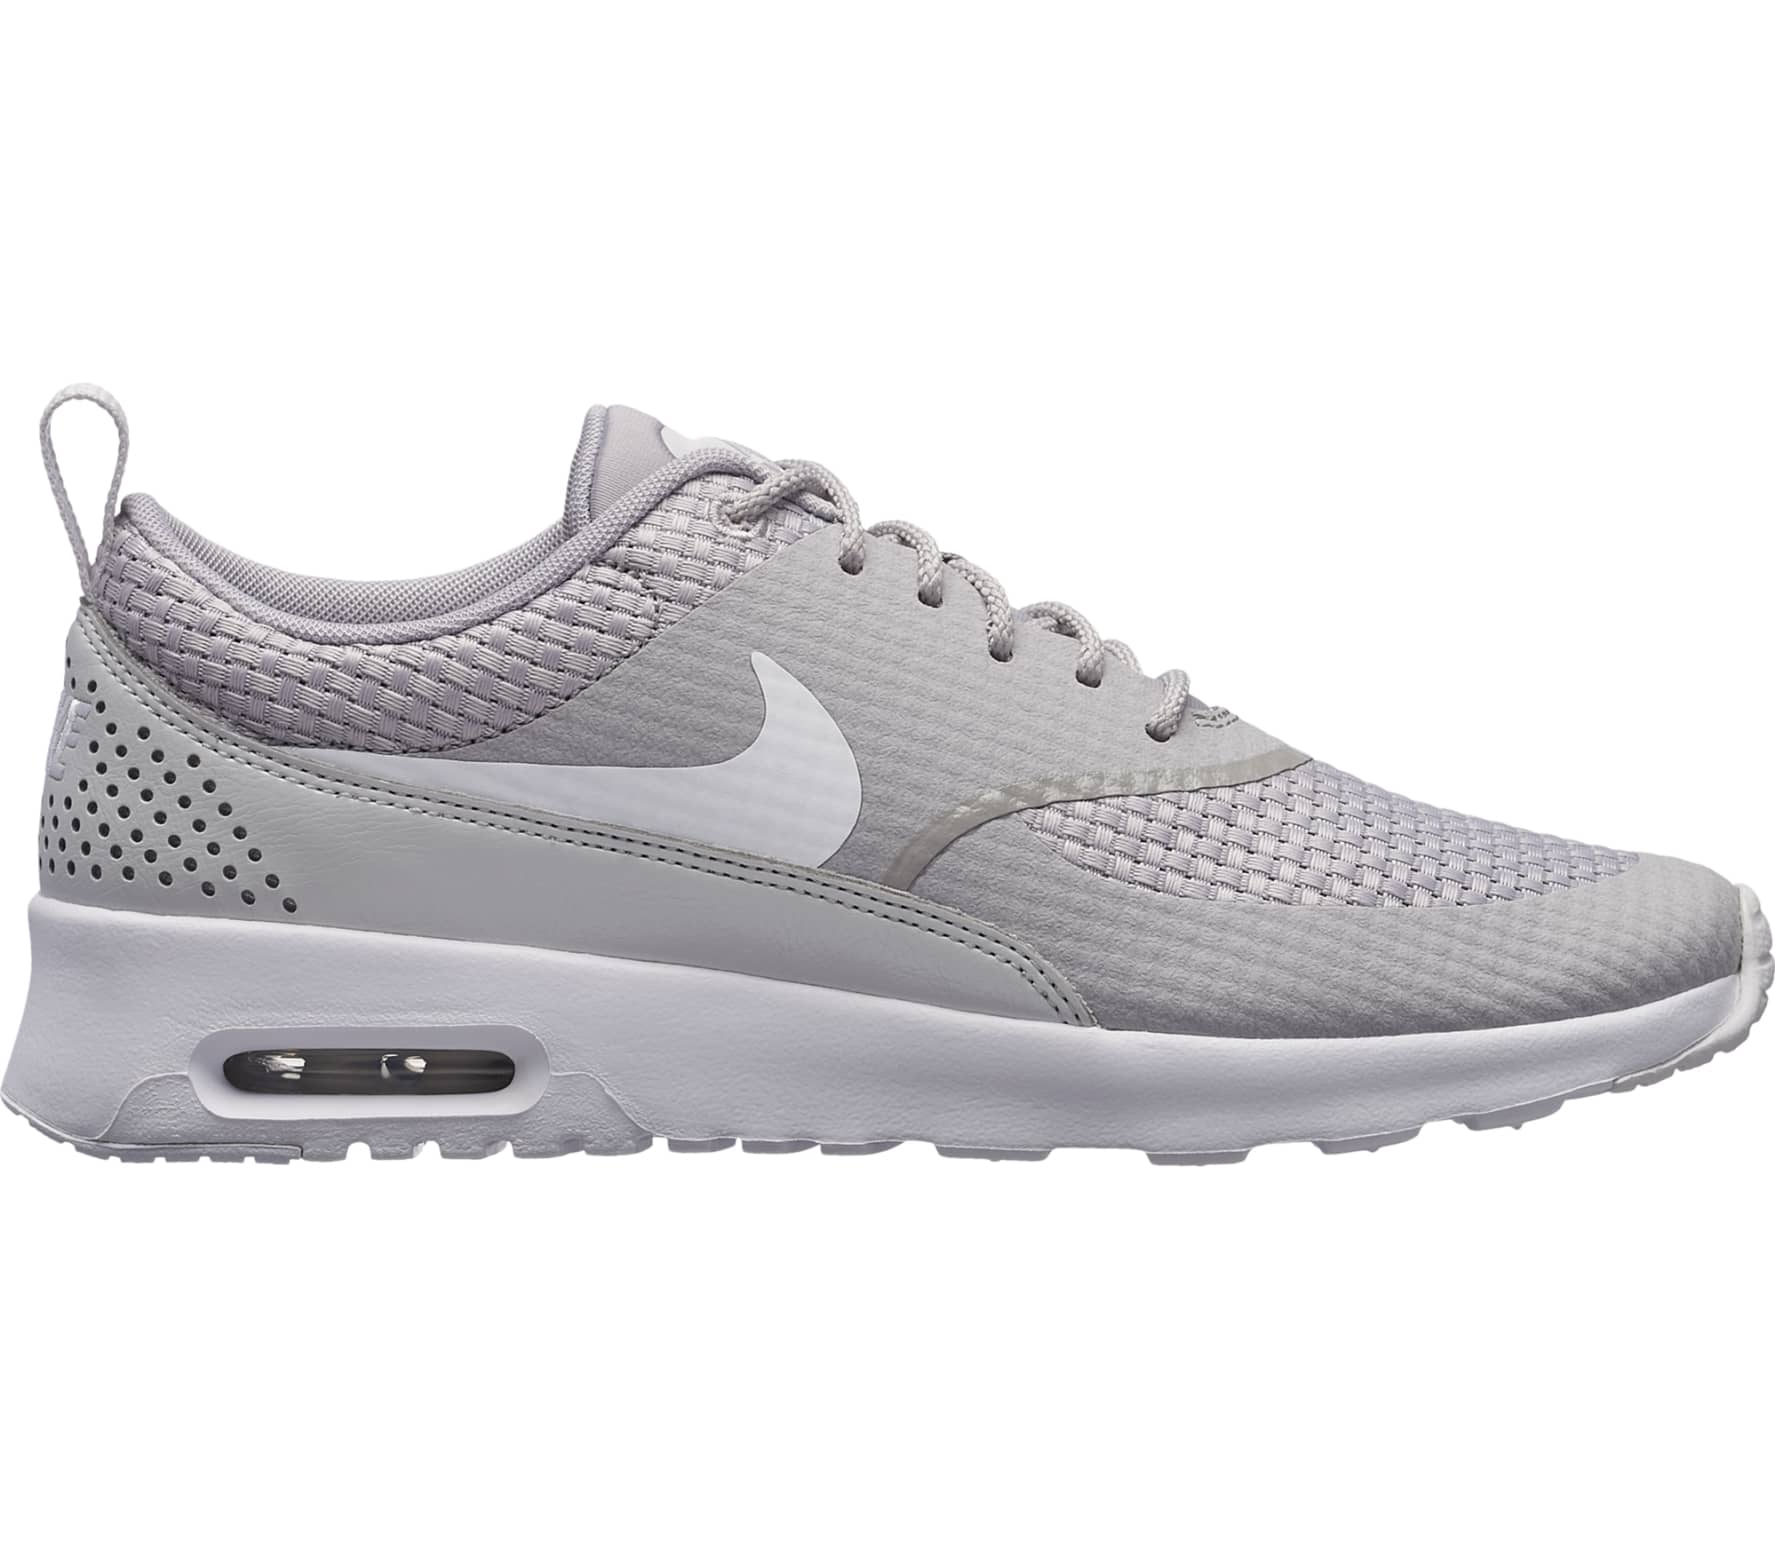 premium selection abfb8 275ff Nike - Air Max Thea Premium women s running shoes (light grey white)